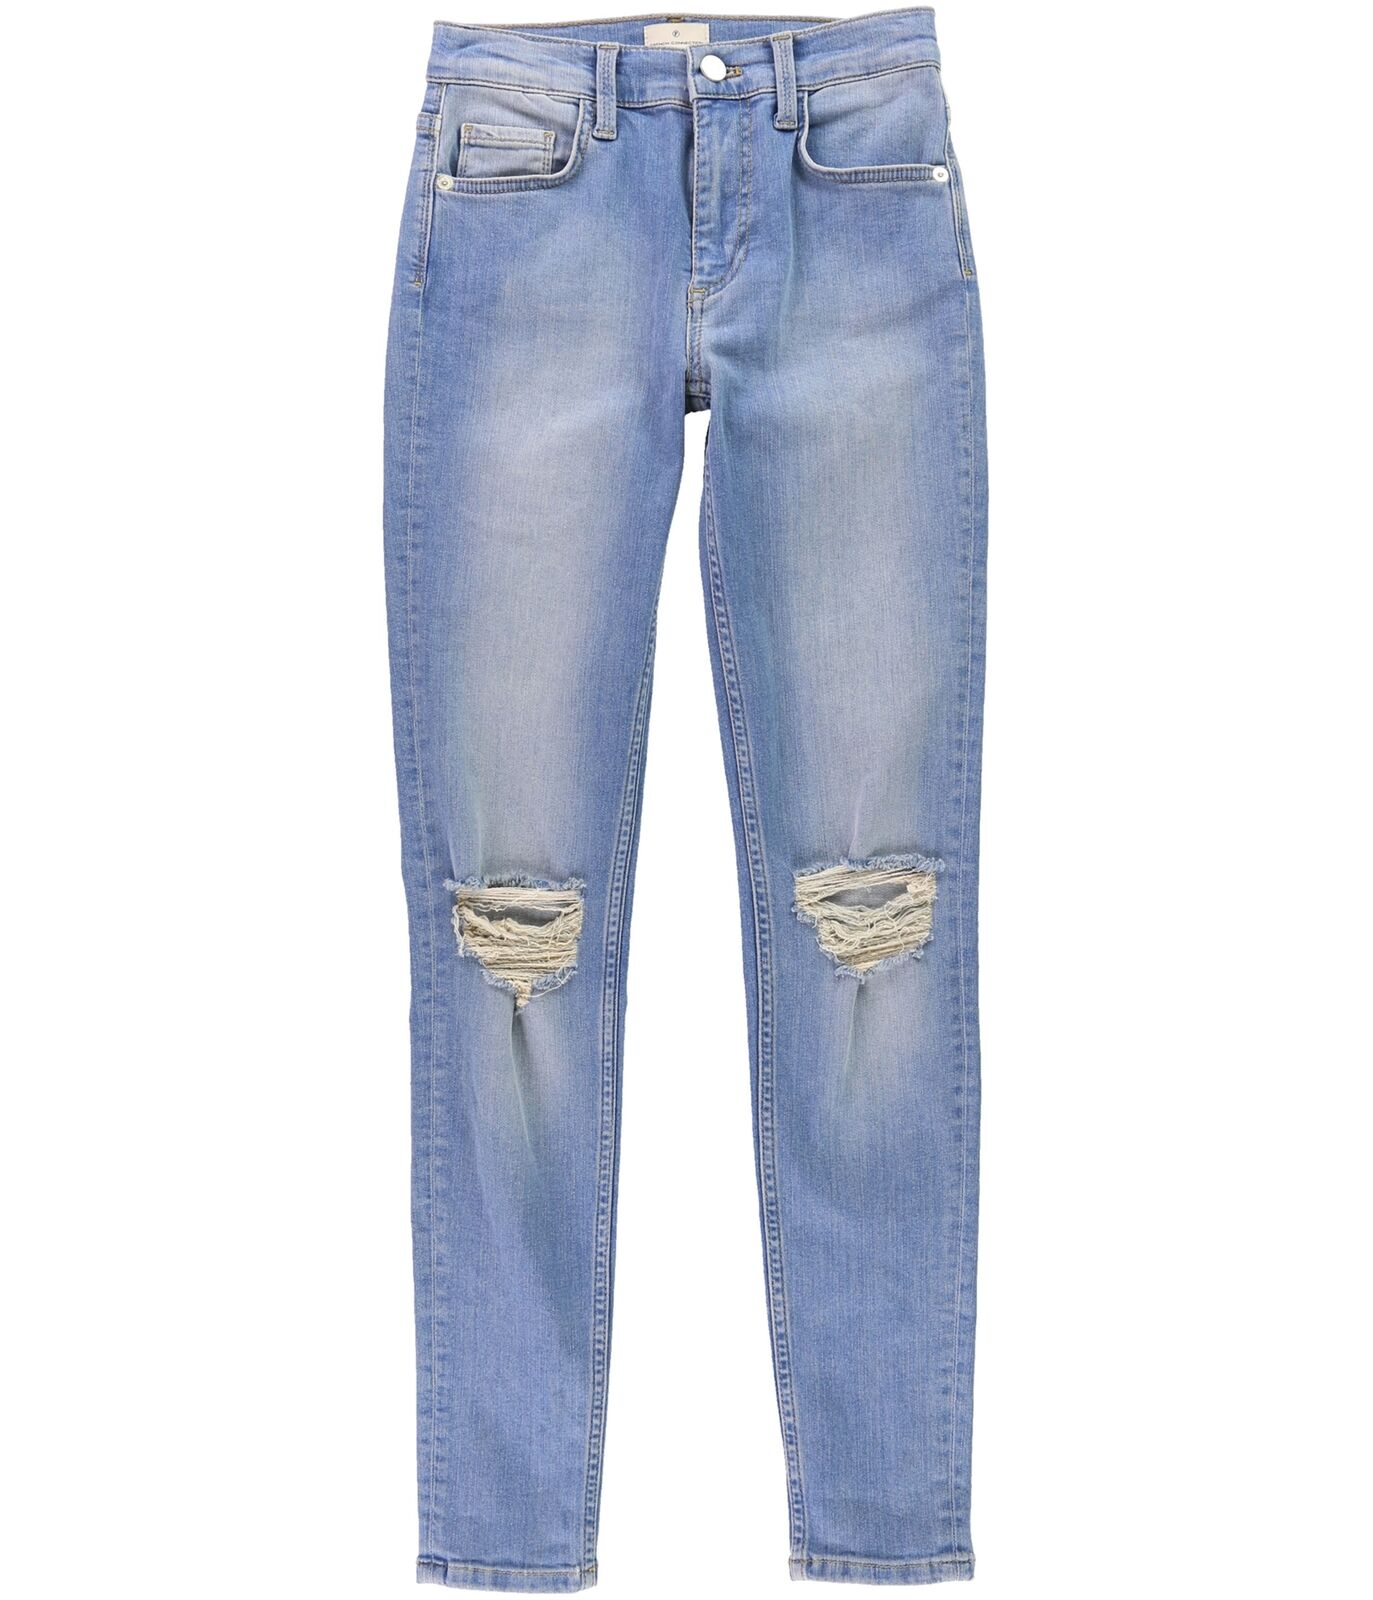 French Connection Womens Ripped Skinny Fit Jeans